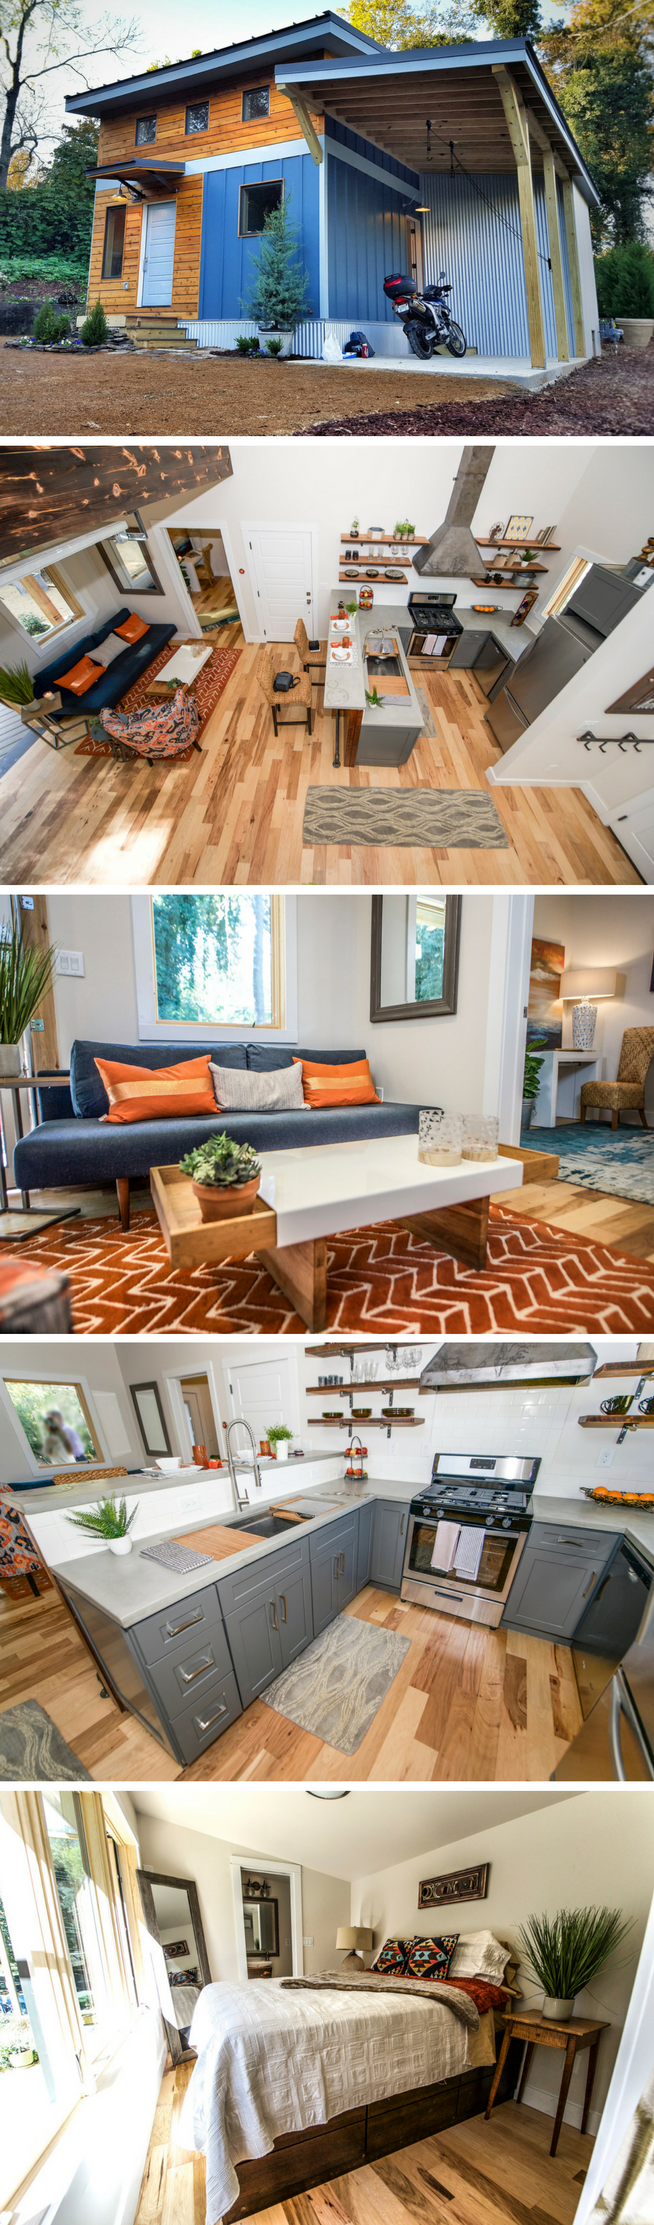 The Urban Micro House: a 600 sq ft home from Wind River Tiny Homes ...